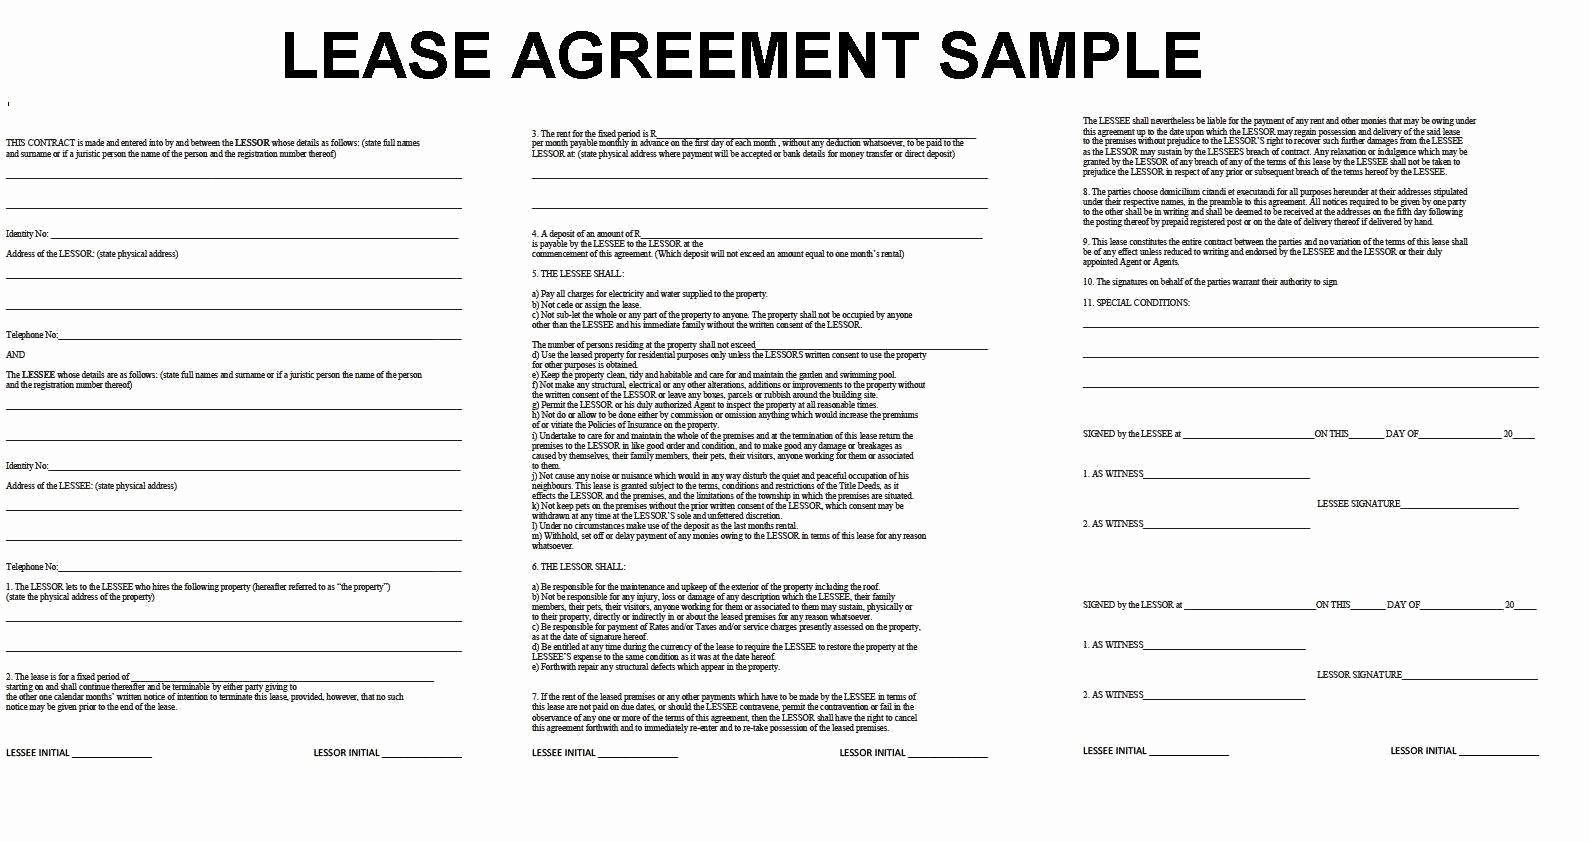 Simple Rental Agreement Template Word Lovely 43 Useful Lease Agreement Sample Word Ju T